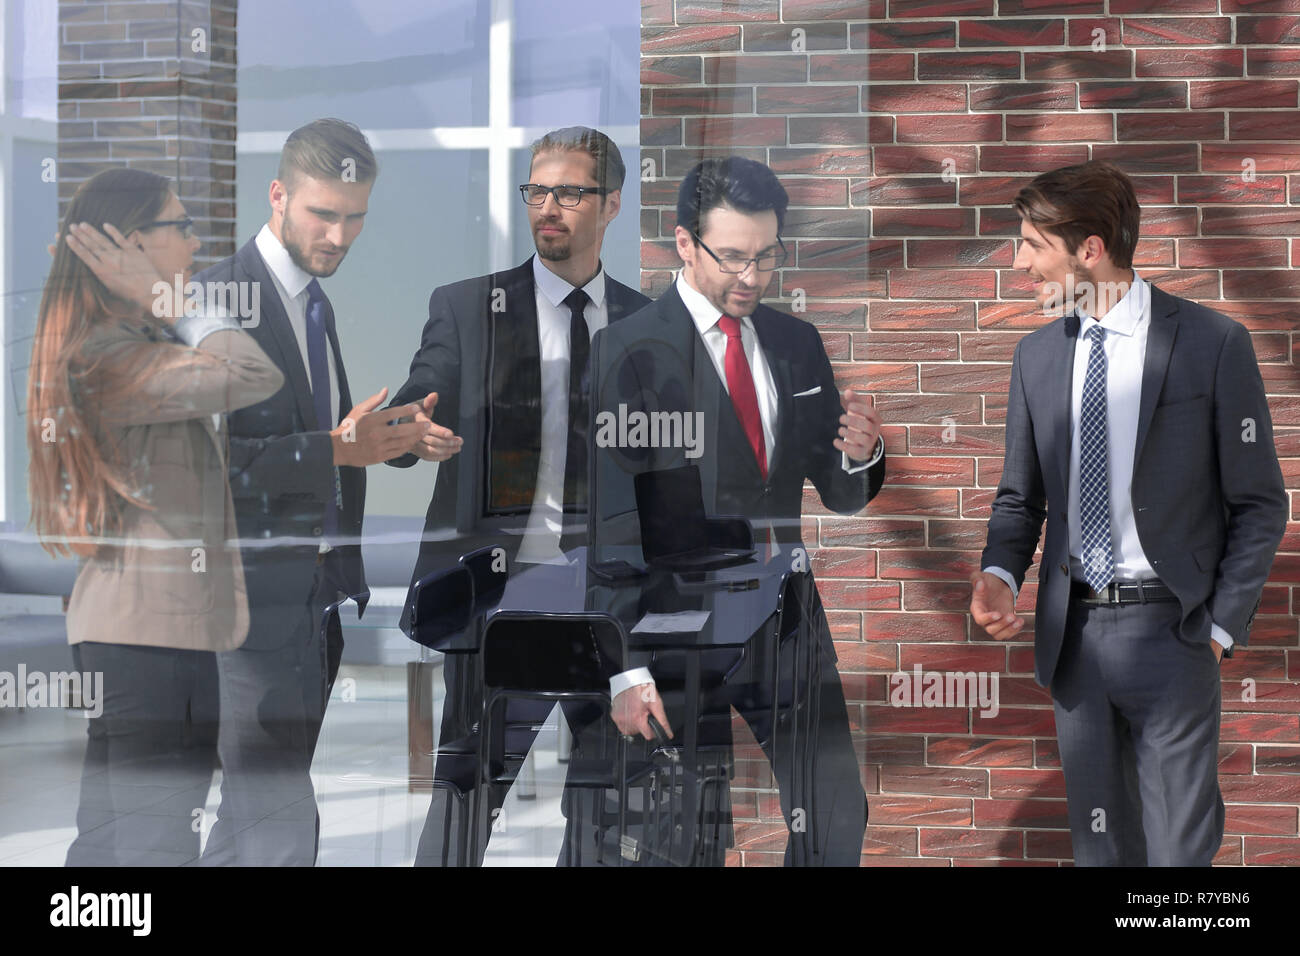 people standing in modern office behind glass wall - Stock Image